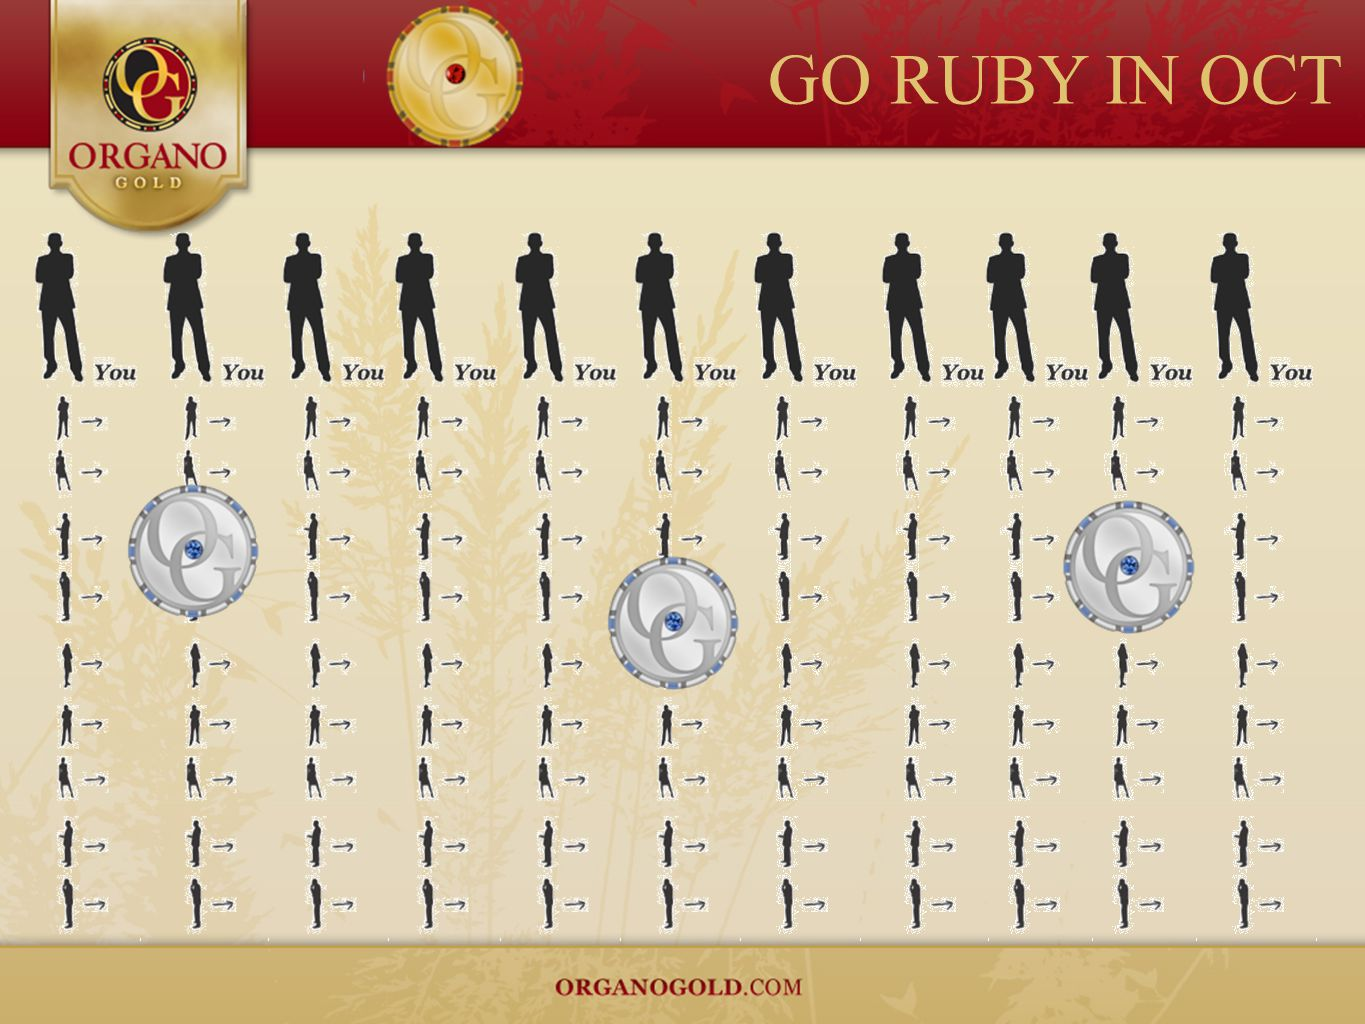 GO RUBY IN OCT